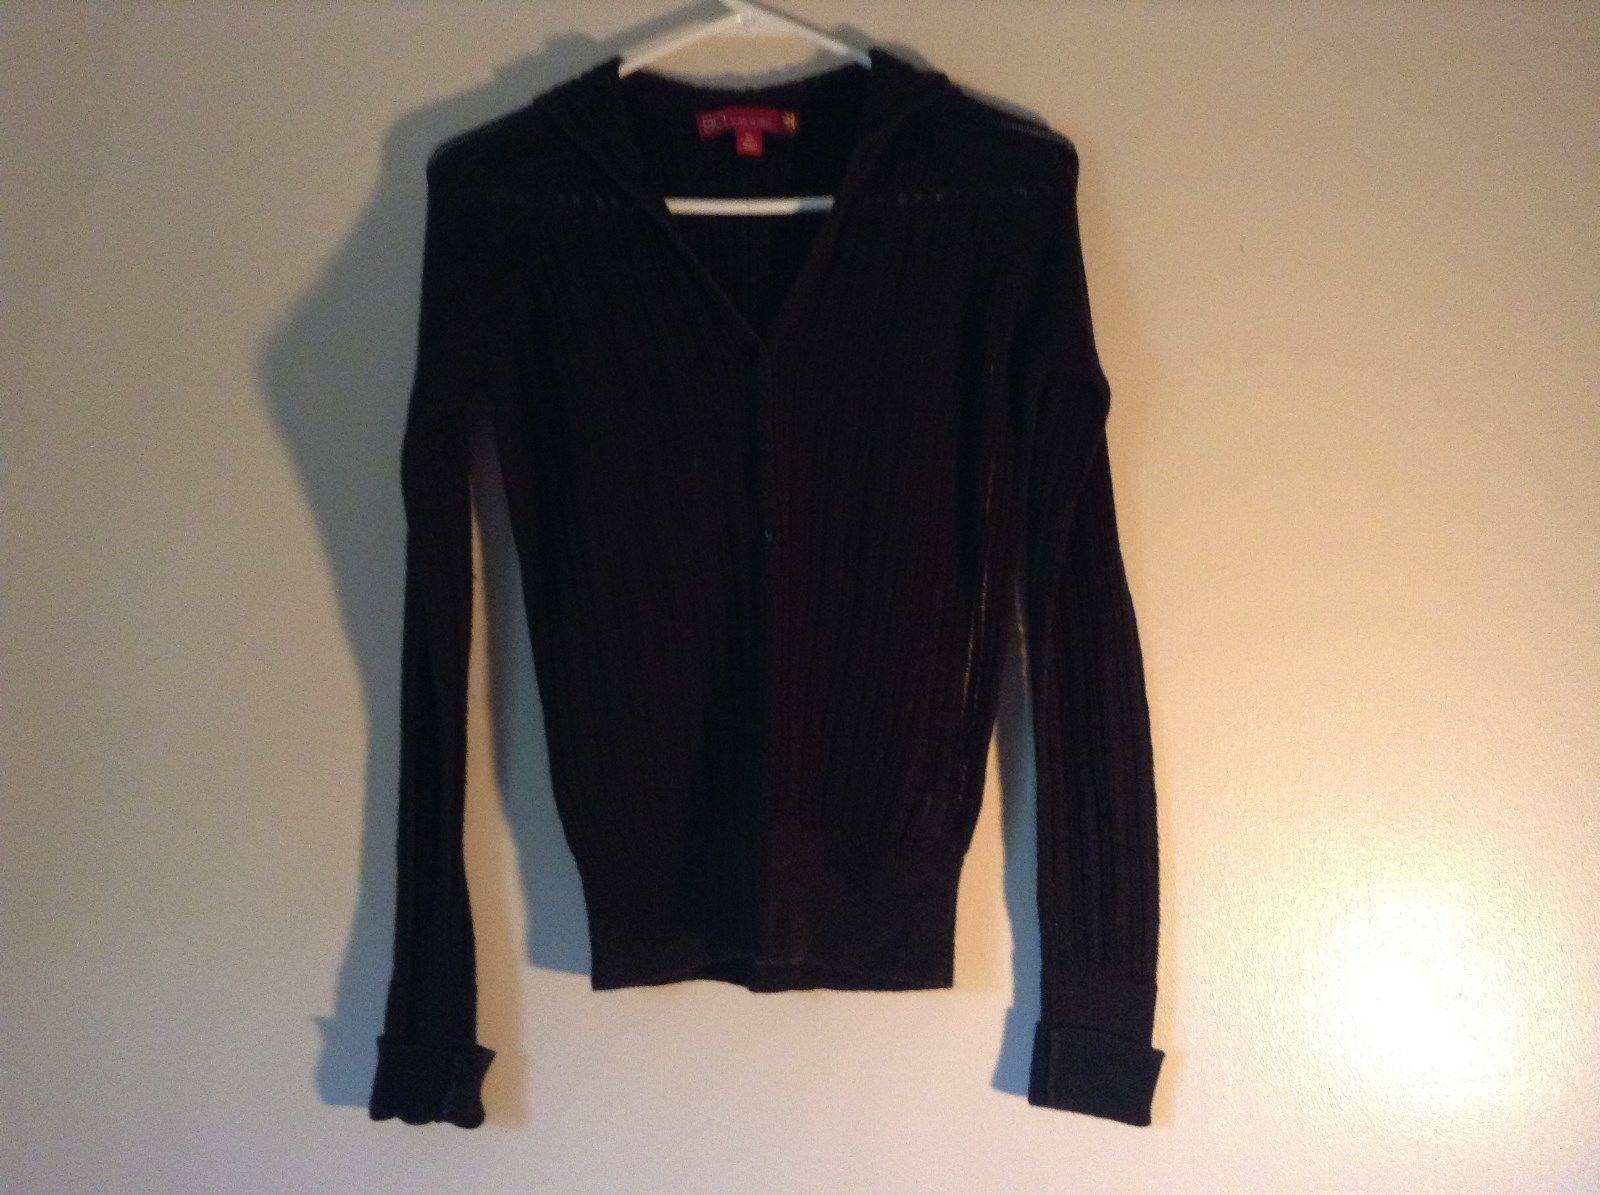 Black Long Sleeve Sweater with Hoodie by SO See Through Buttons on Top Size XL